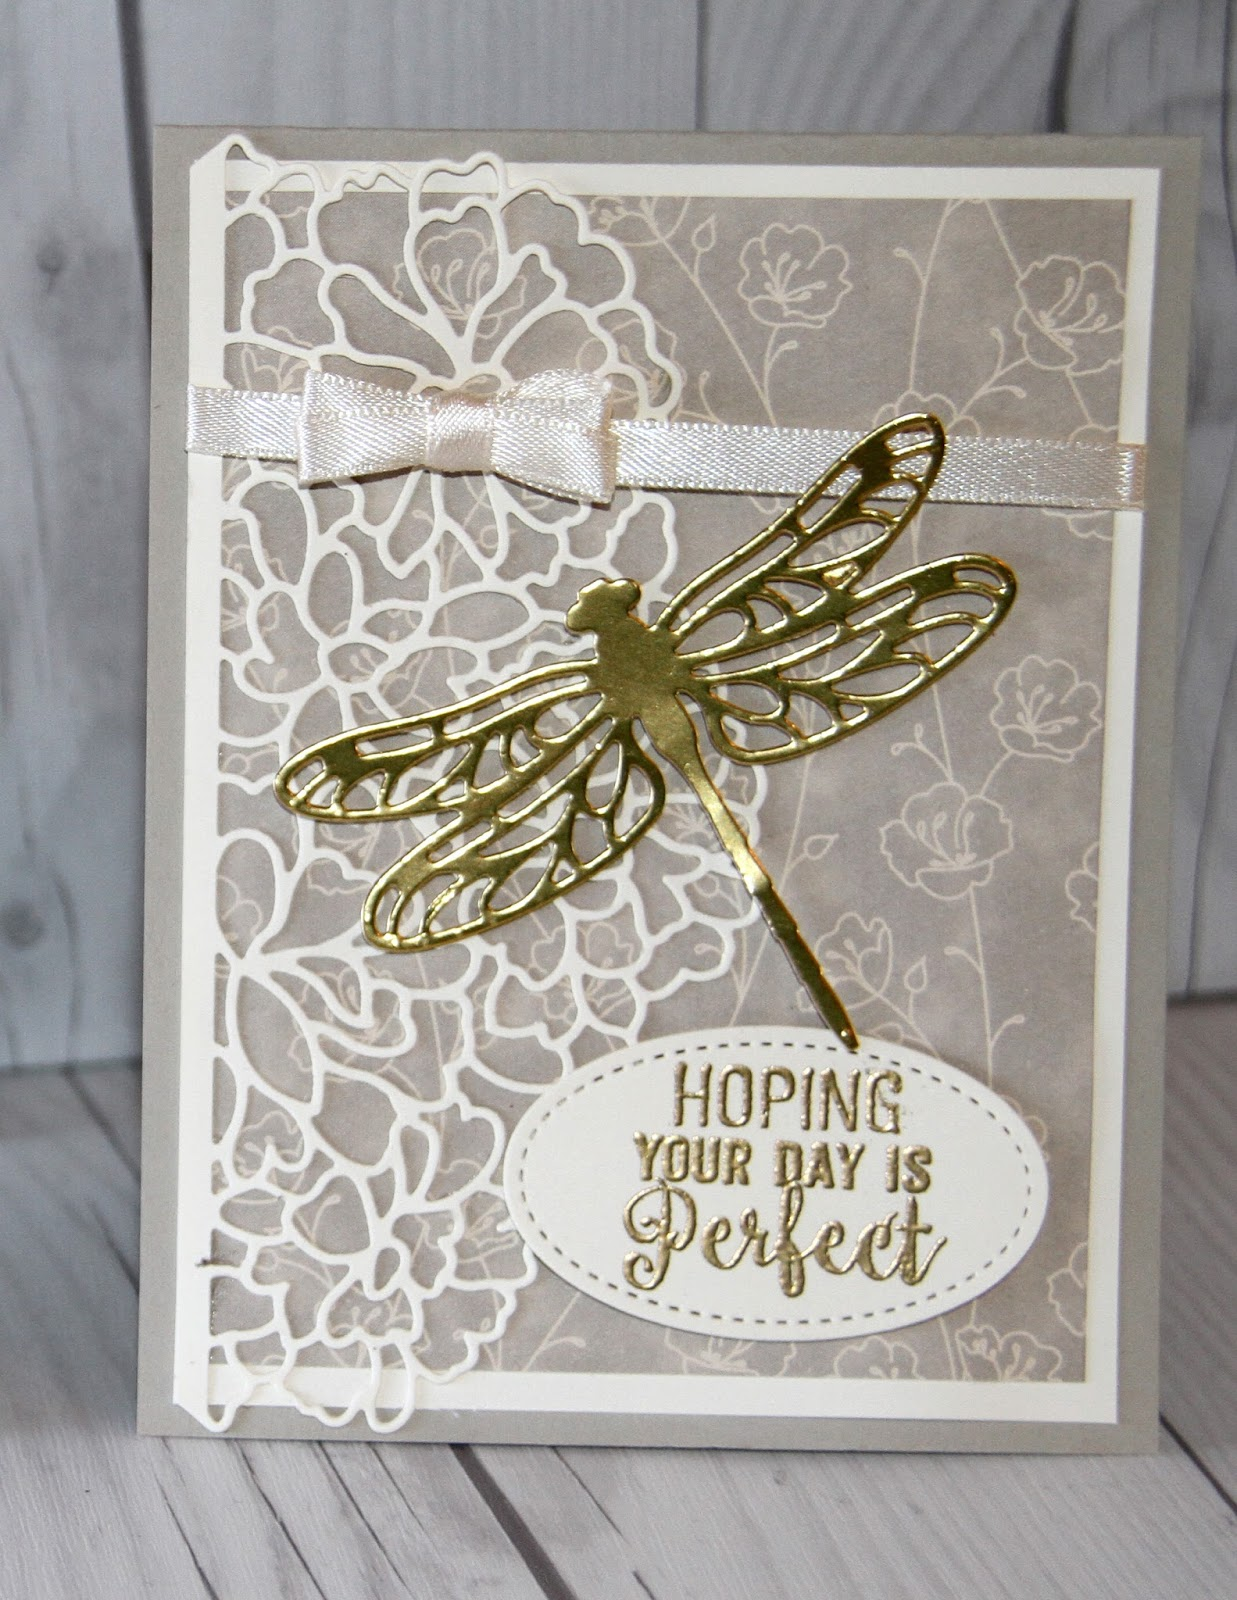 golden dragonfly dreams with stampin' up dies  stamped